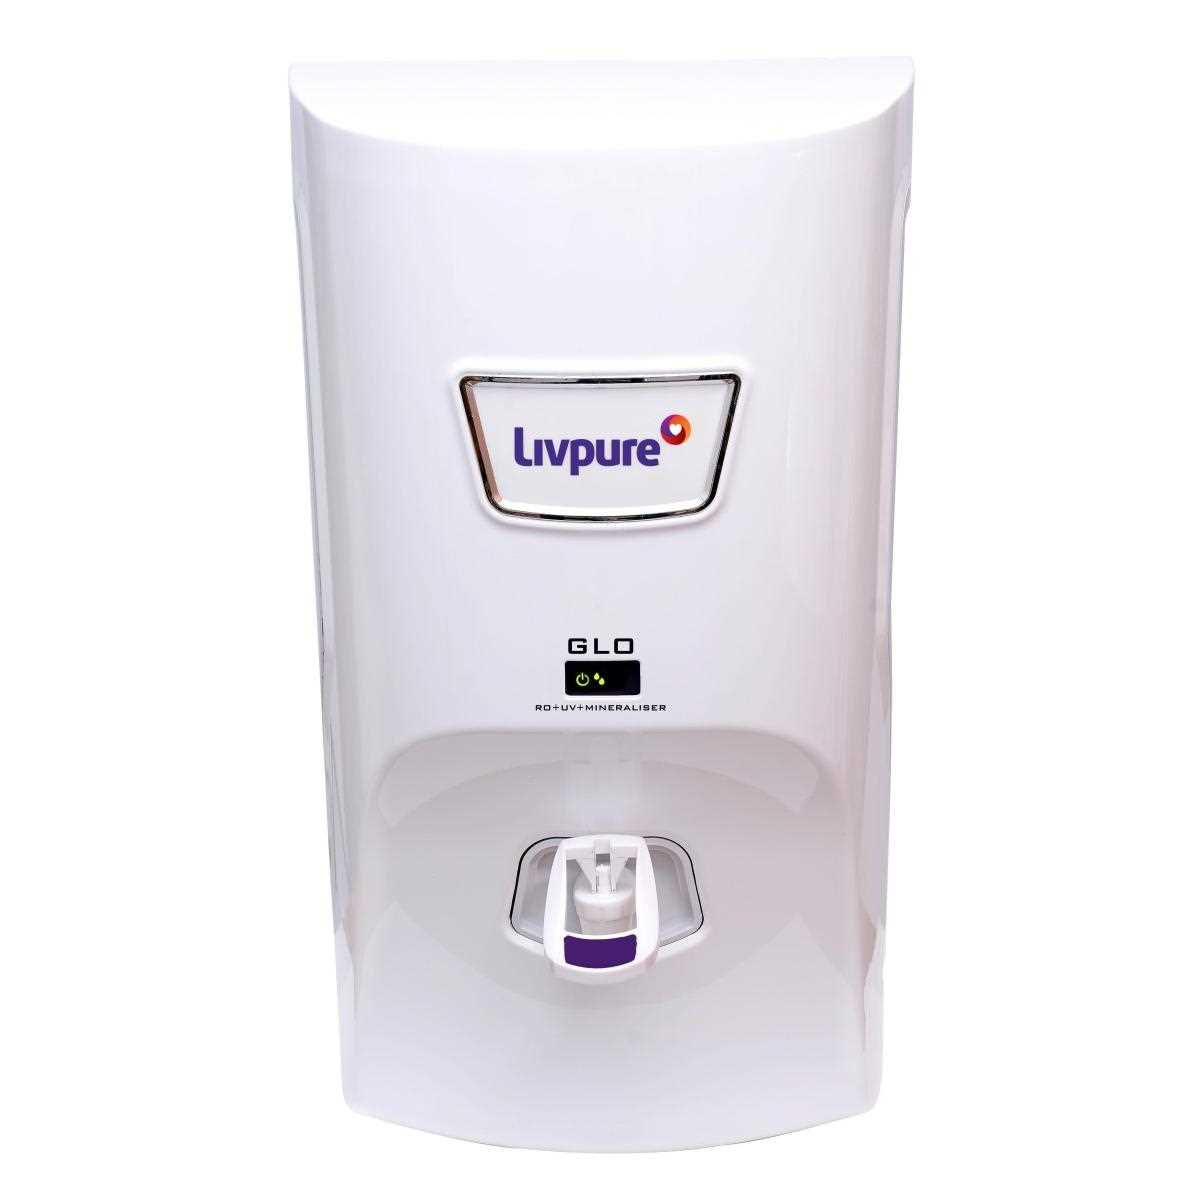 Livpure GLO 7 L RO UV Water Purifier